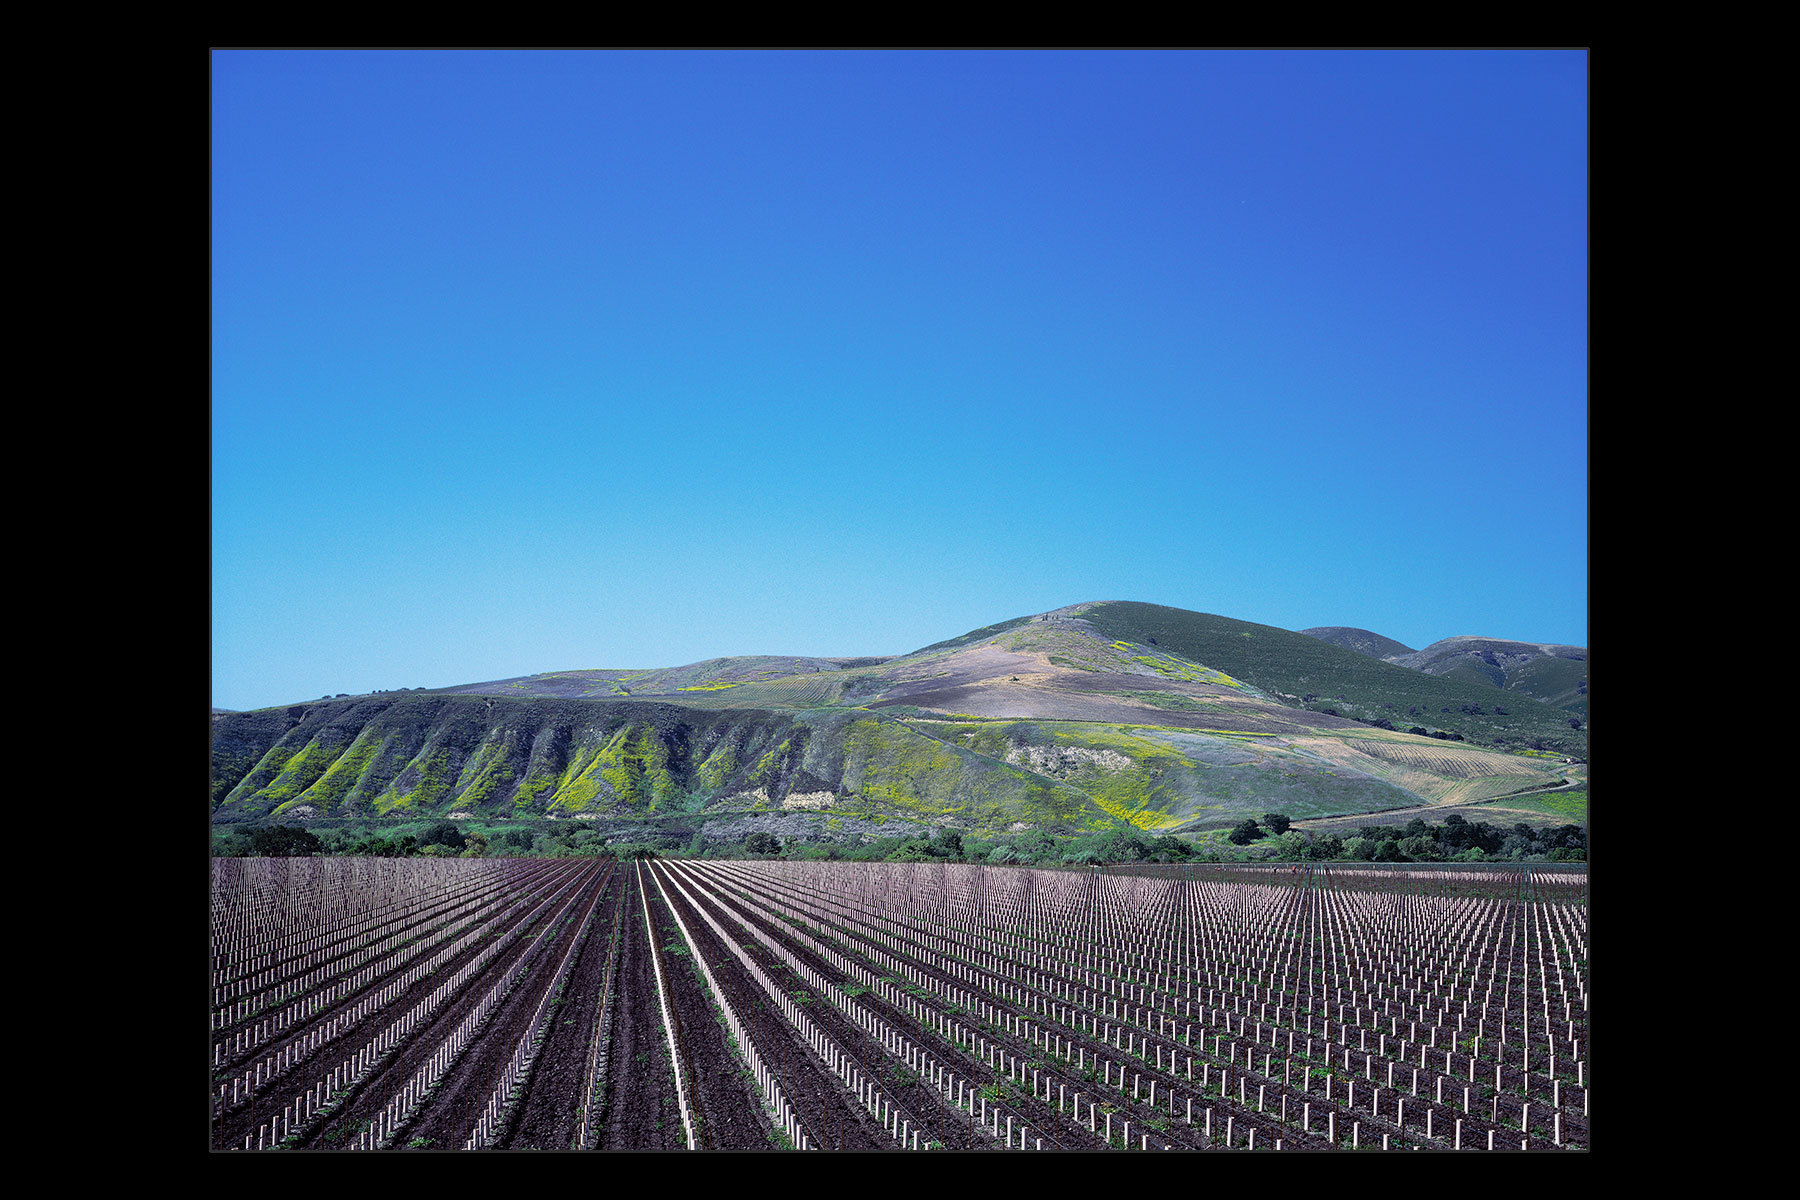 vineyard stakes, central California